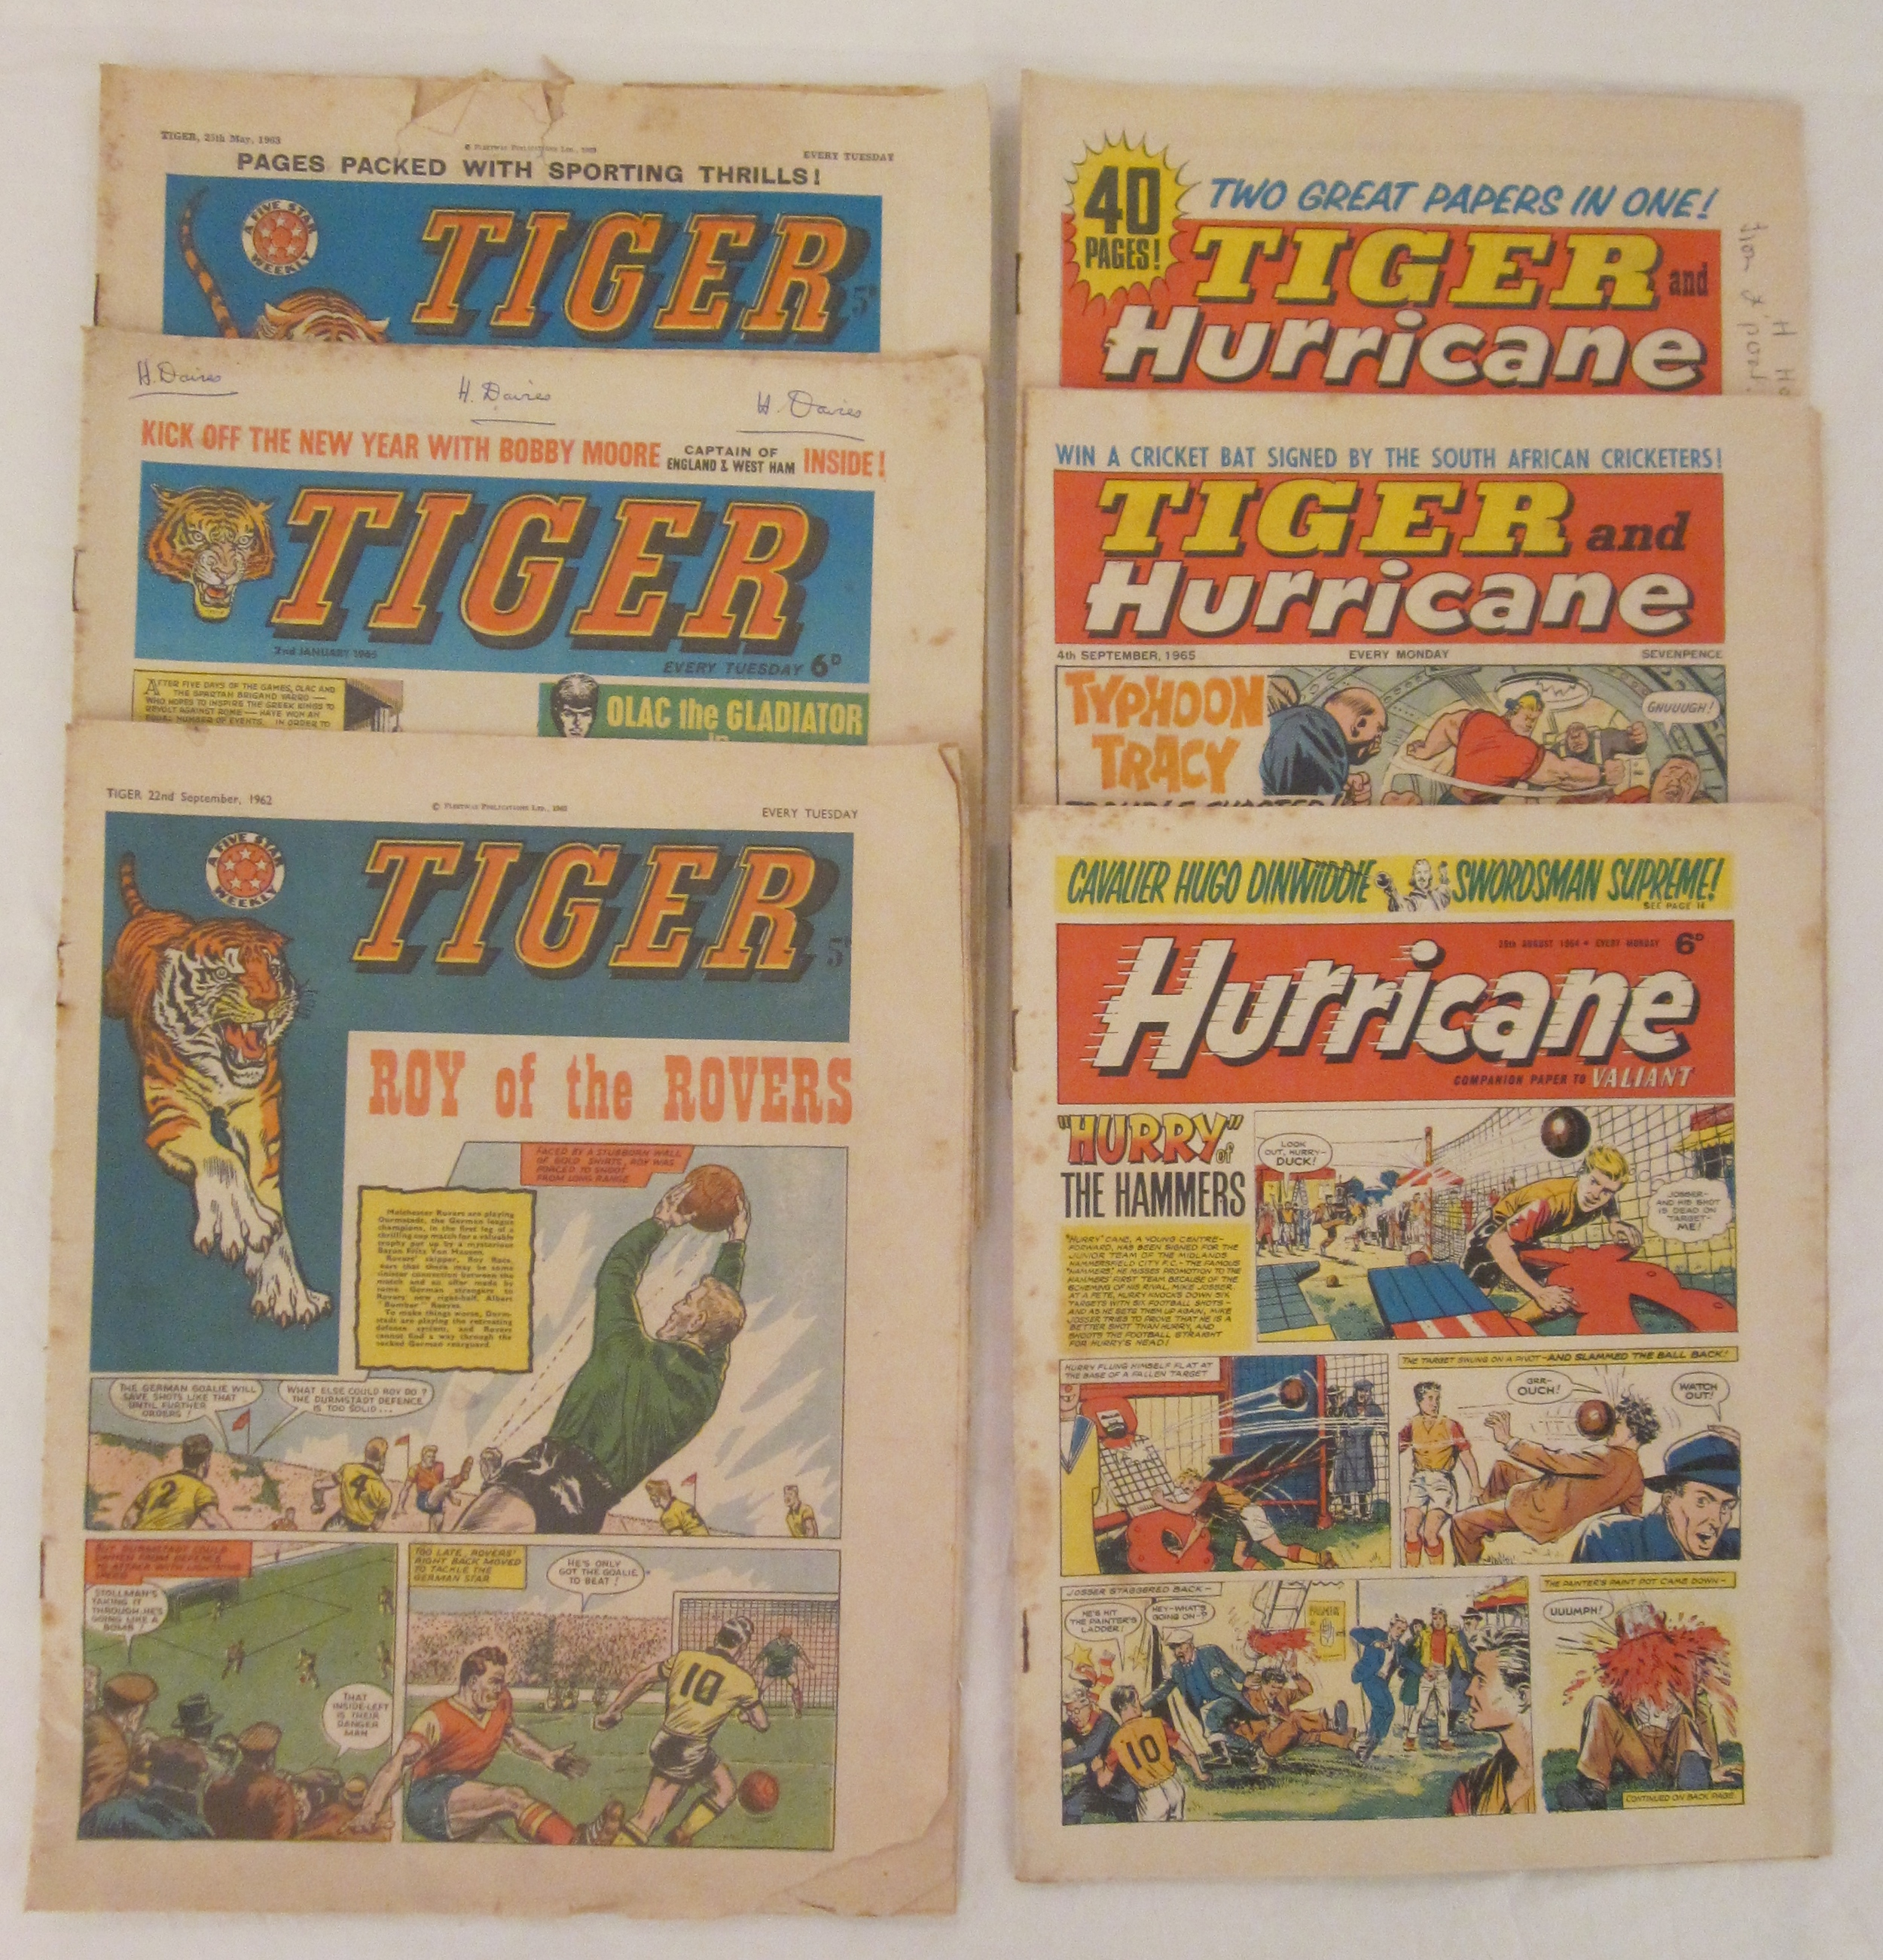 Tiger/Hurricane